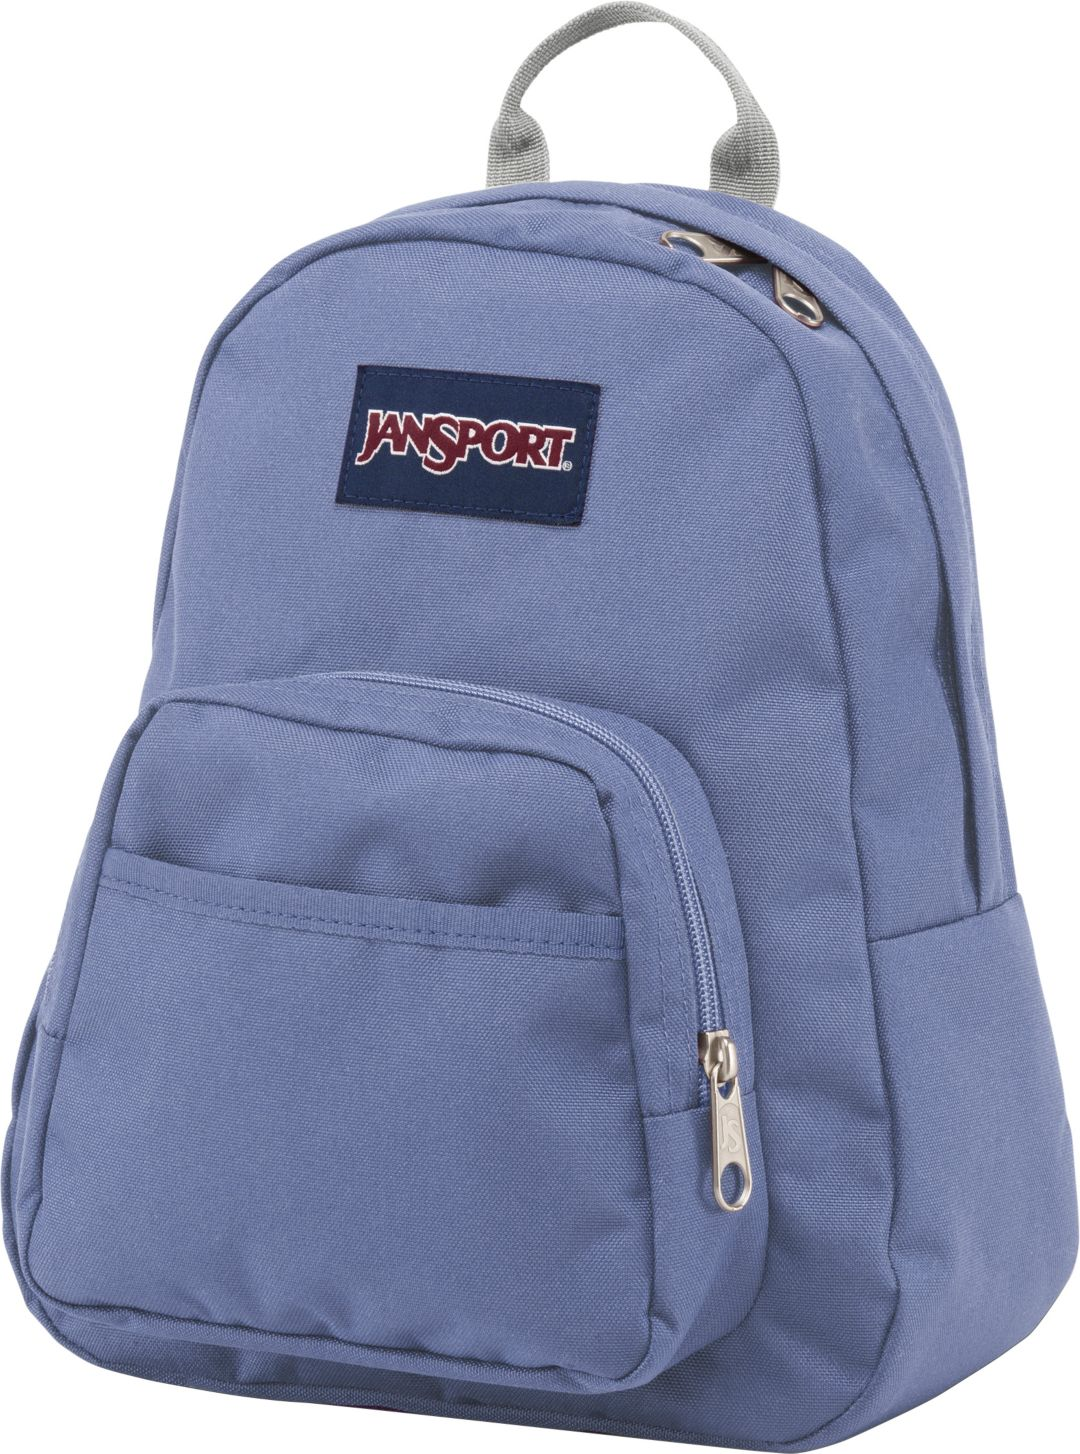 Jansport Backpack Black Price - Swiss Paralympic